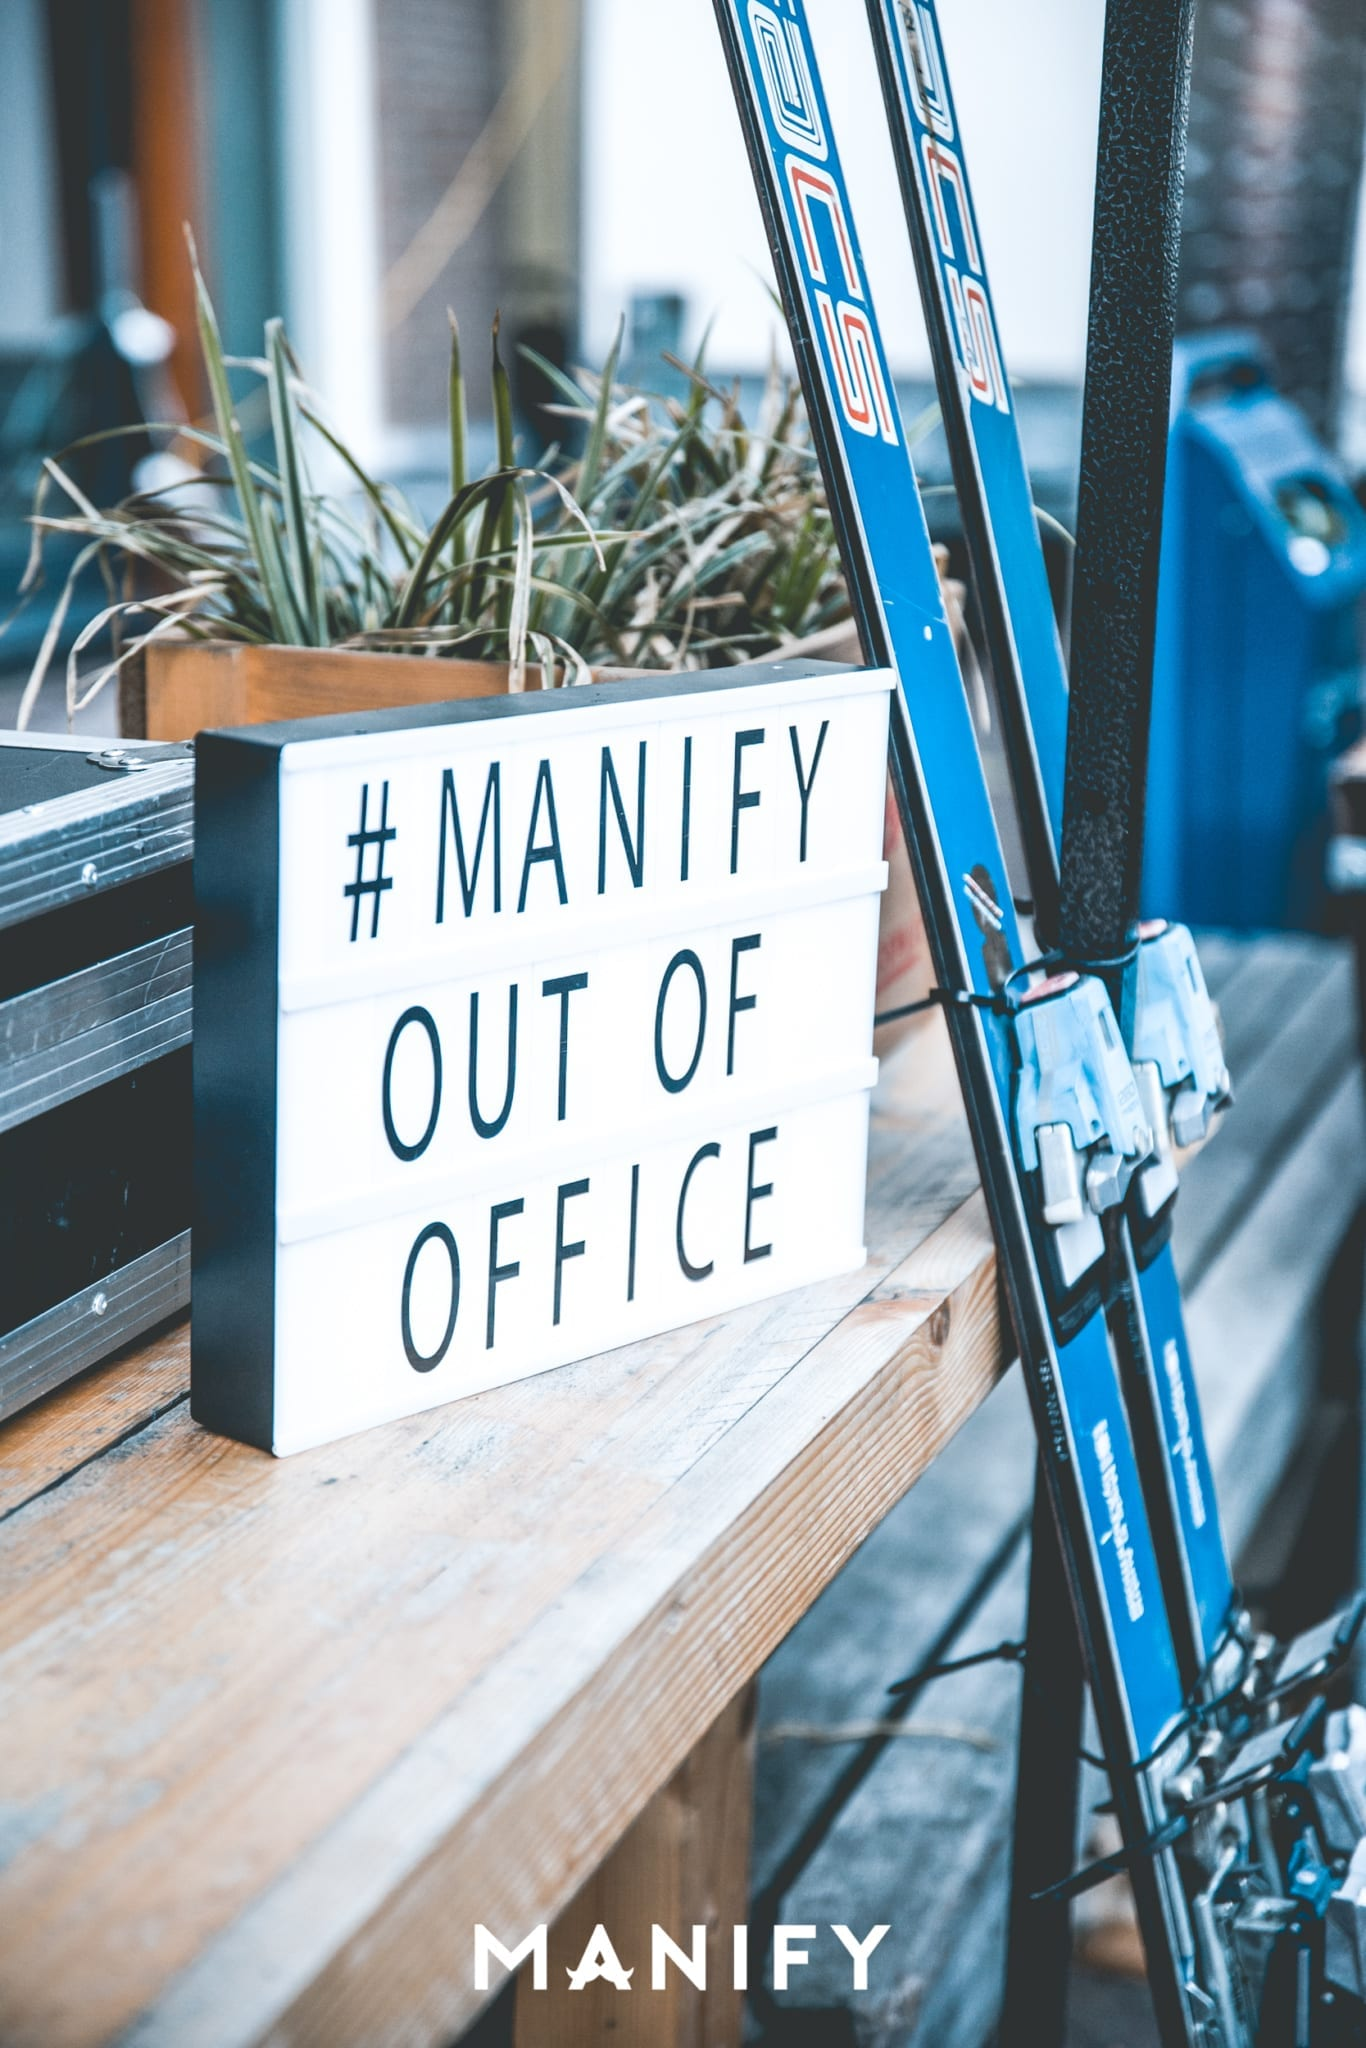 Manify_Out_of_office-E10_WM-3-manify